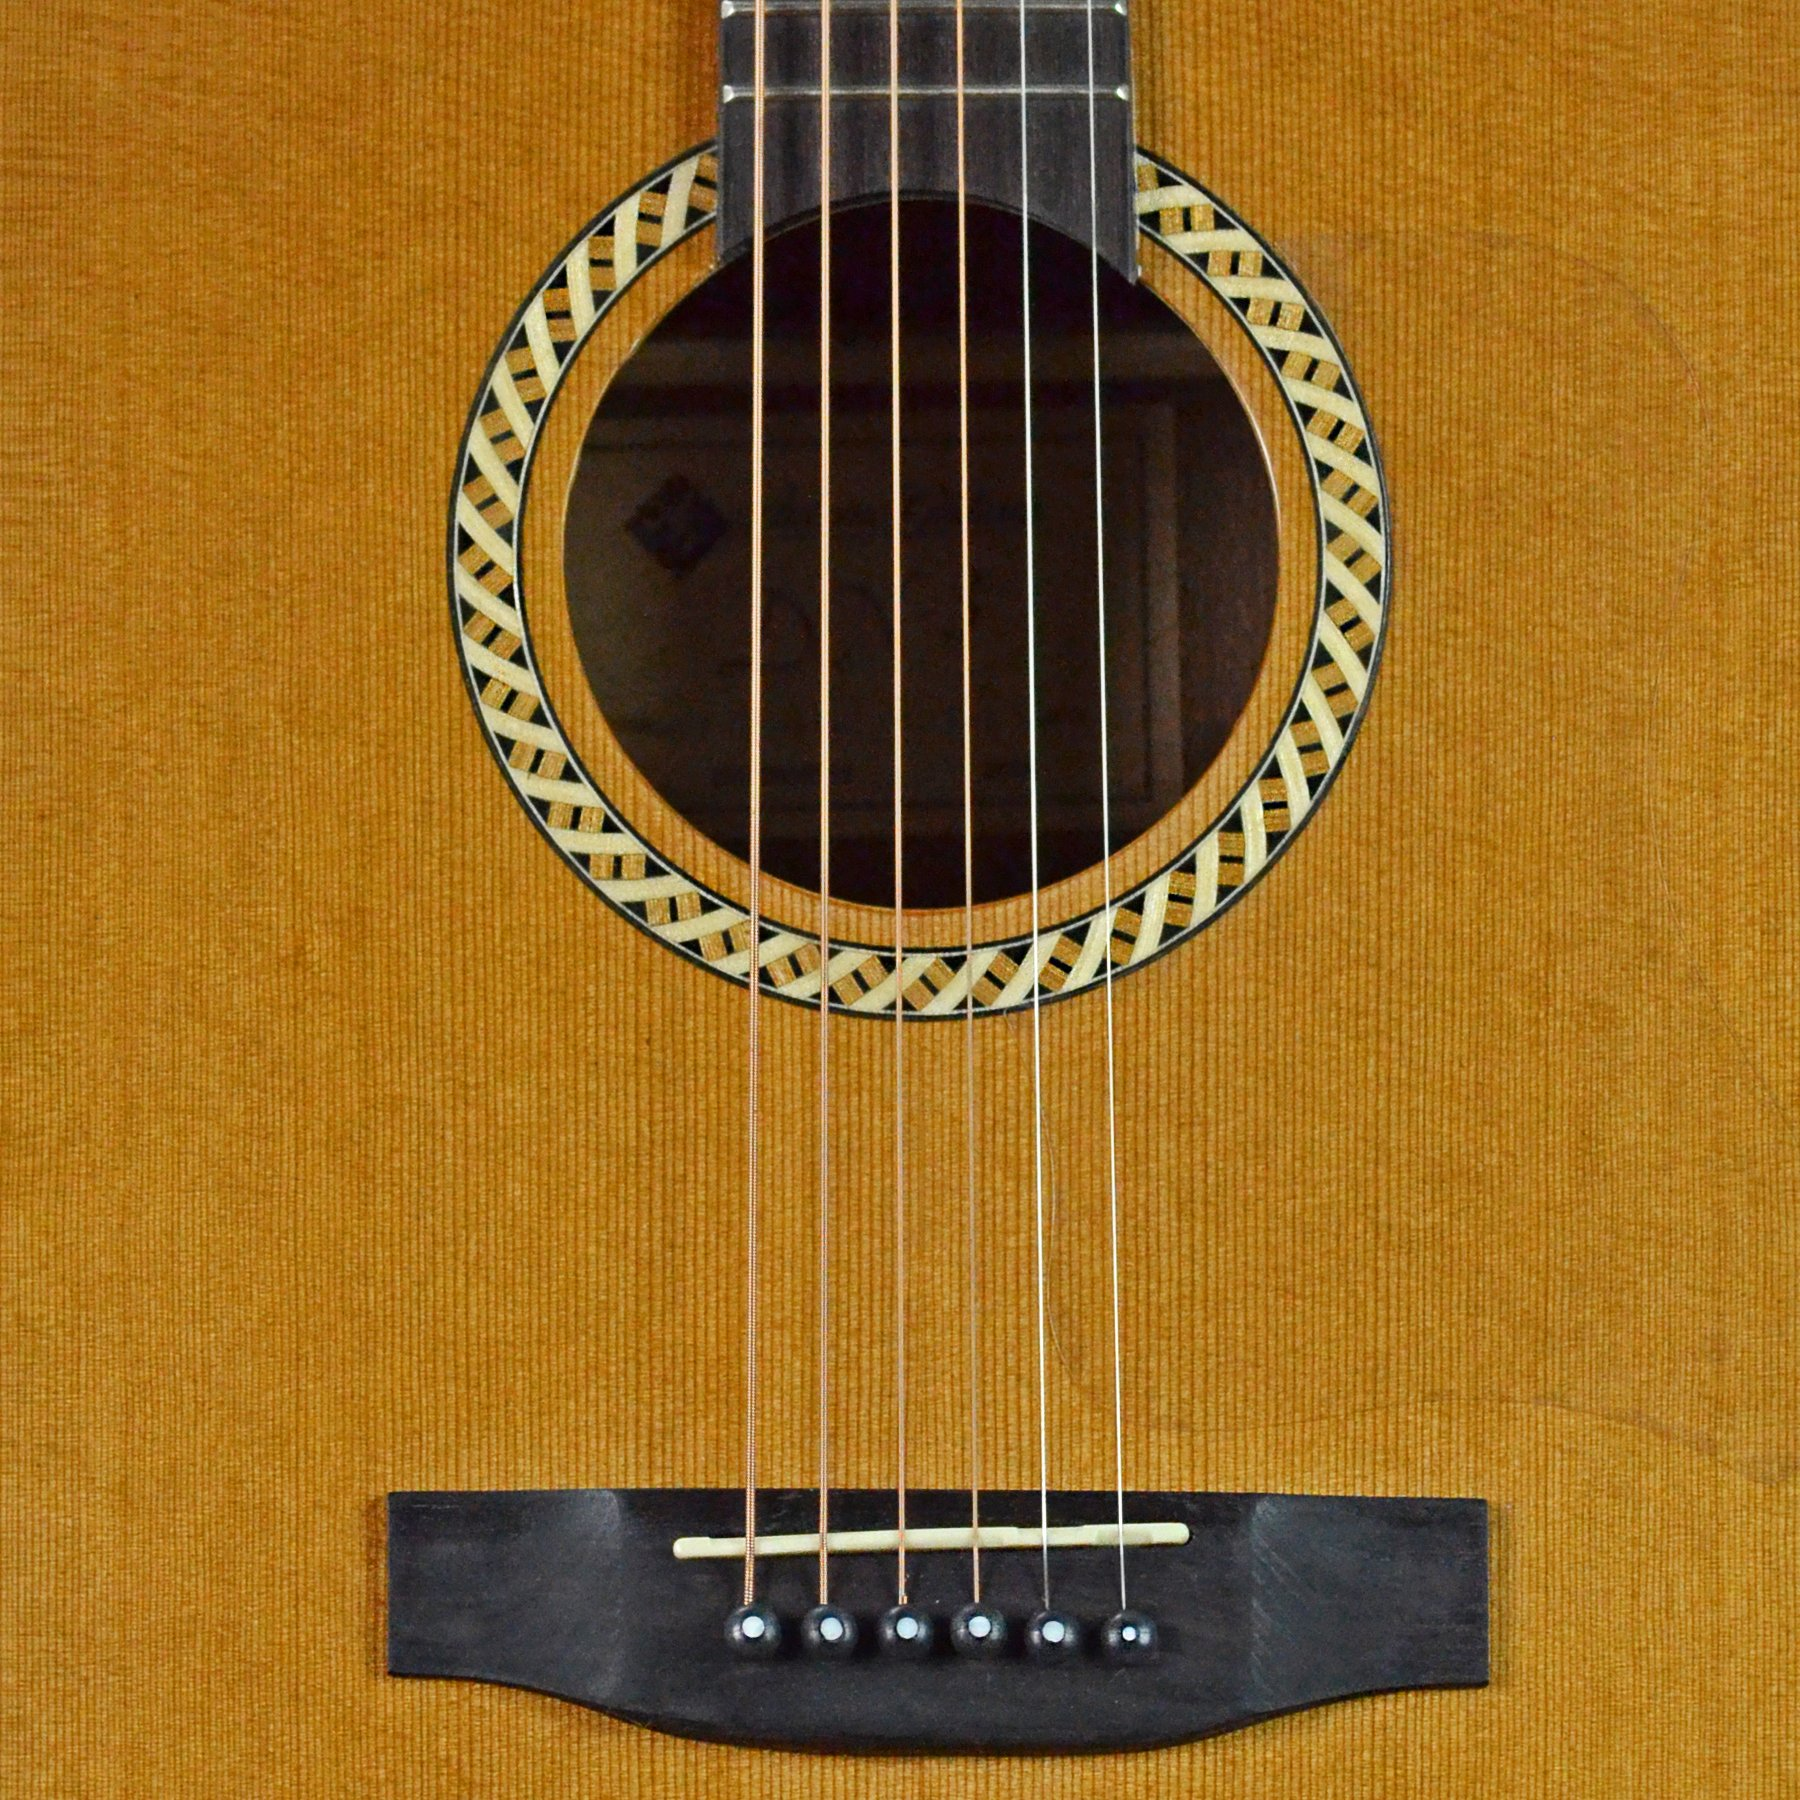 CLEARANCE Antonio Giuliani DN-3 Steel-String Dreadnought Acoustic Guitar Outfit in action